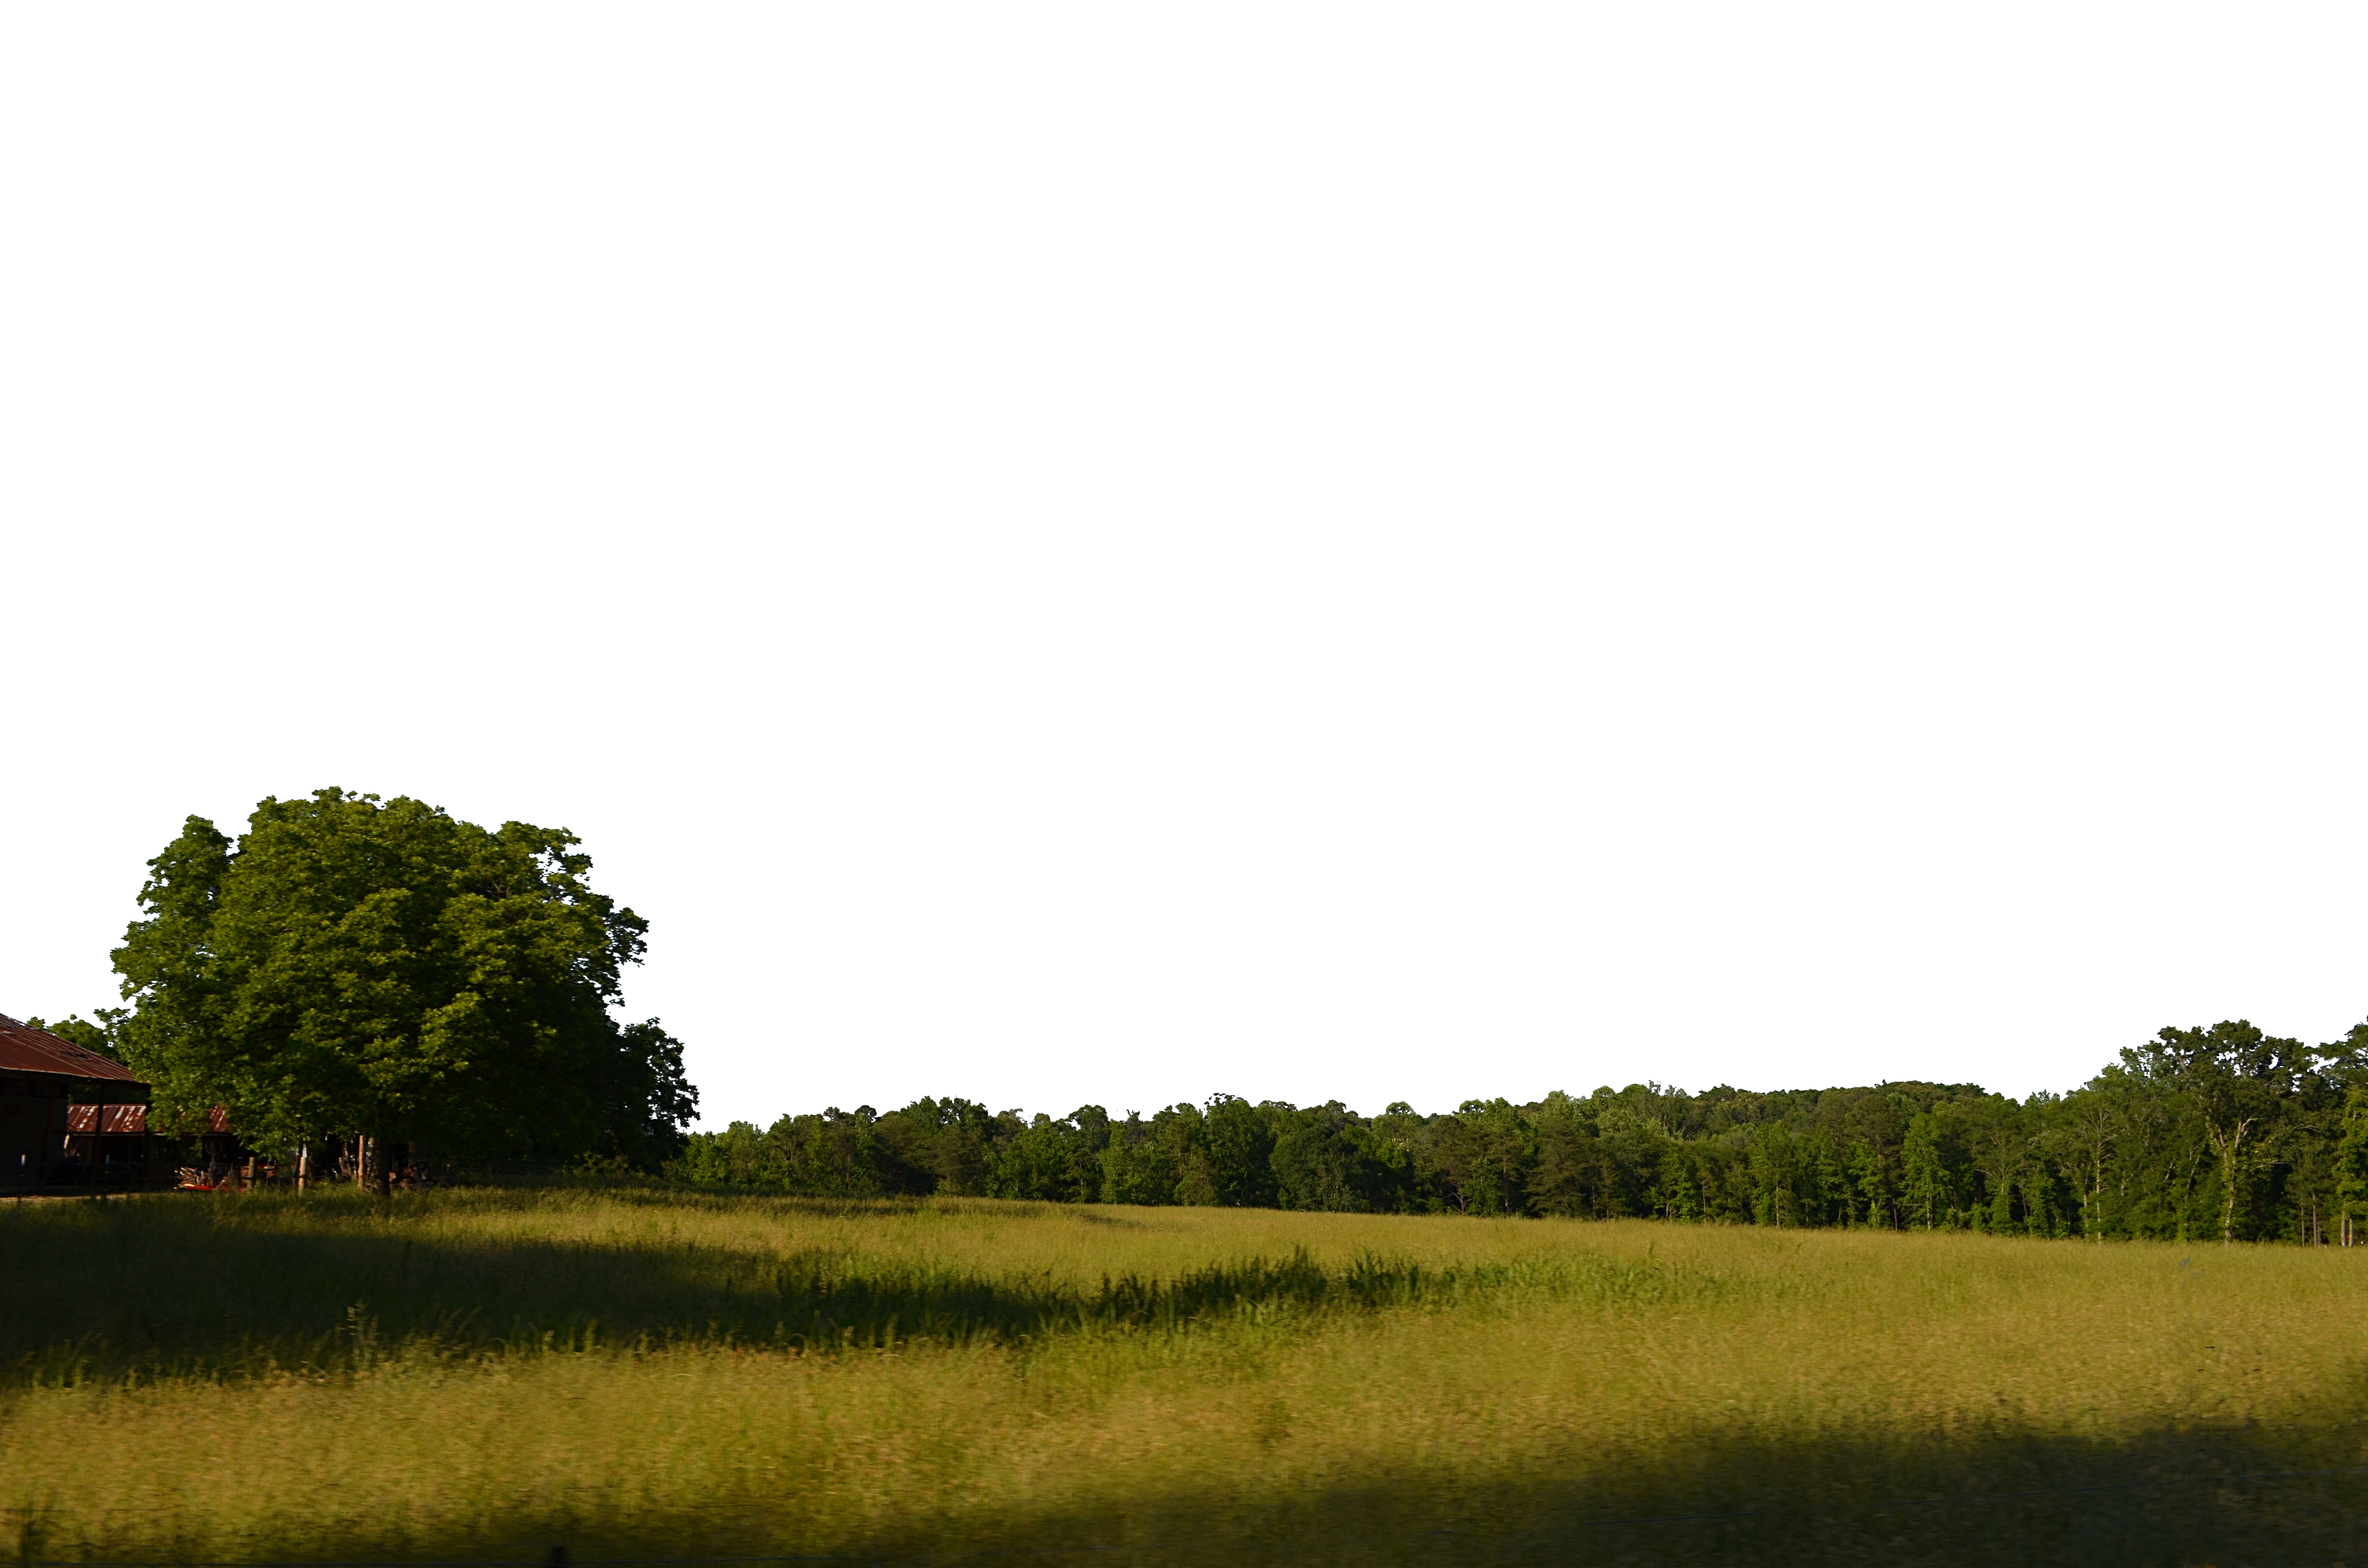 Field And Trees Background PNG Stock 0038 Copy 5 By